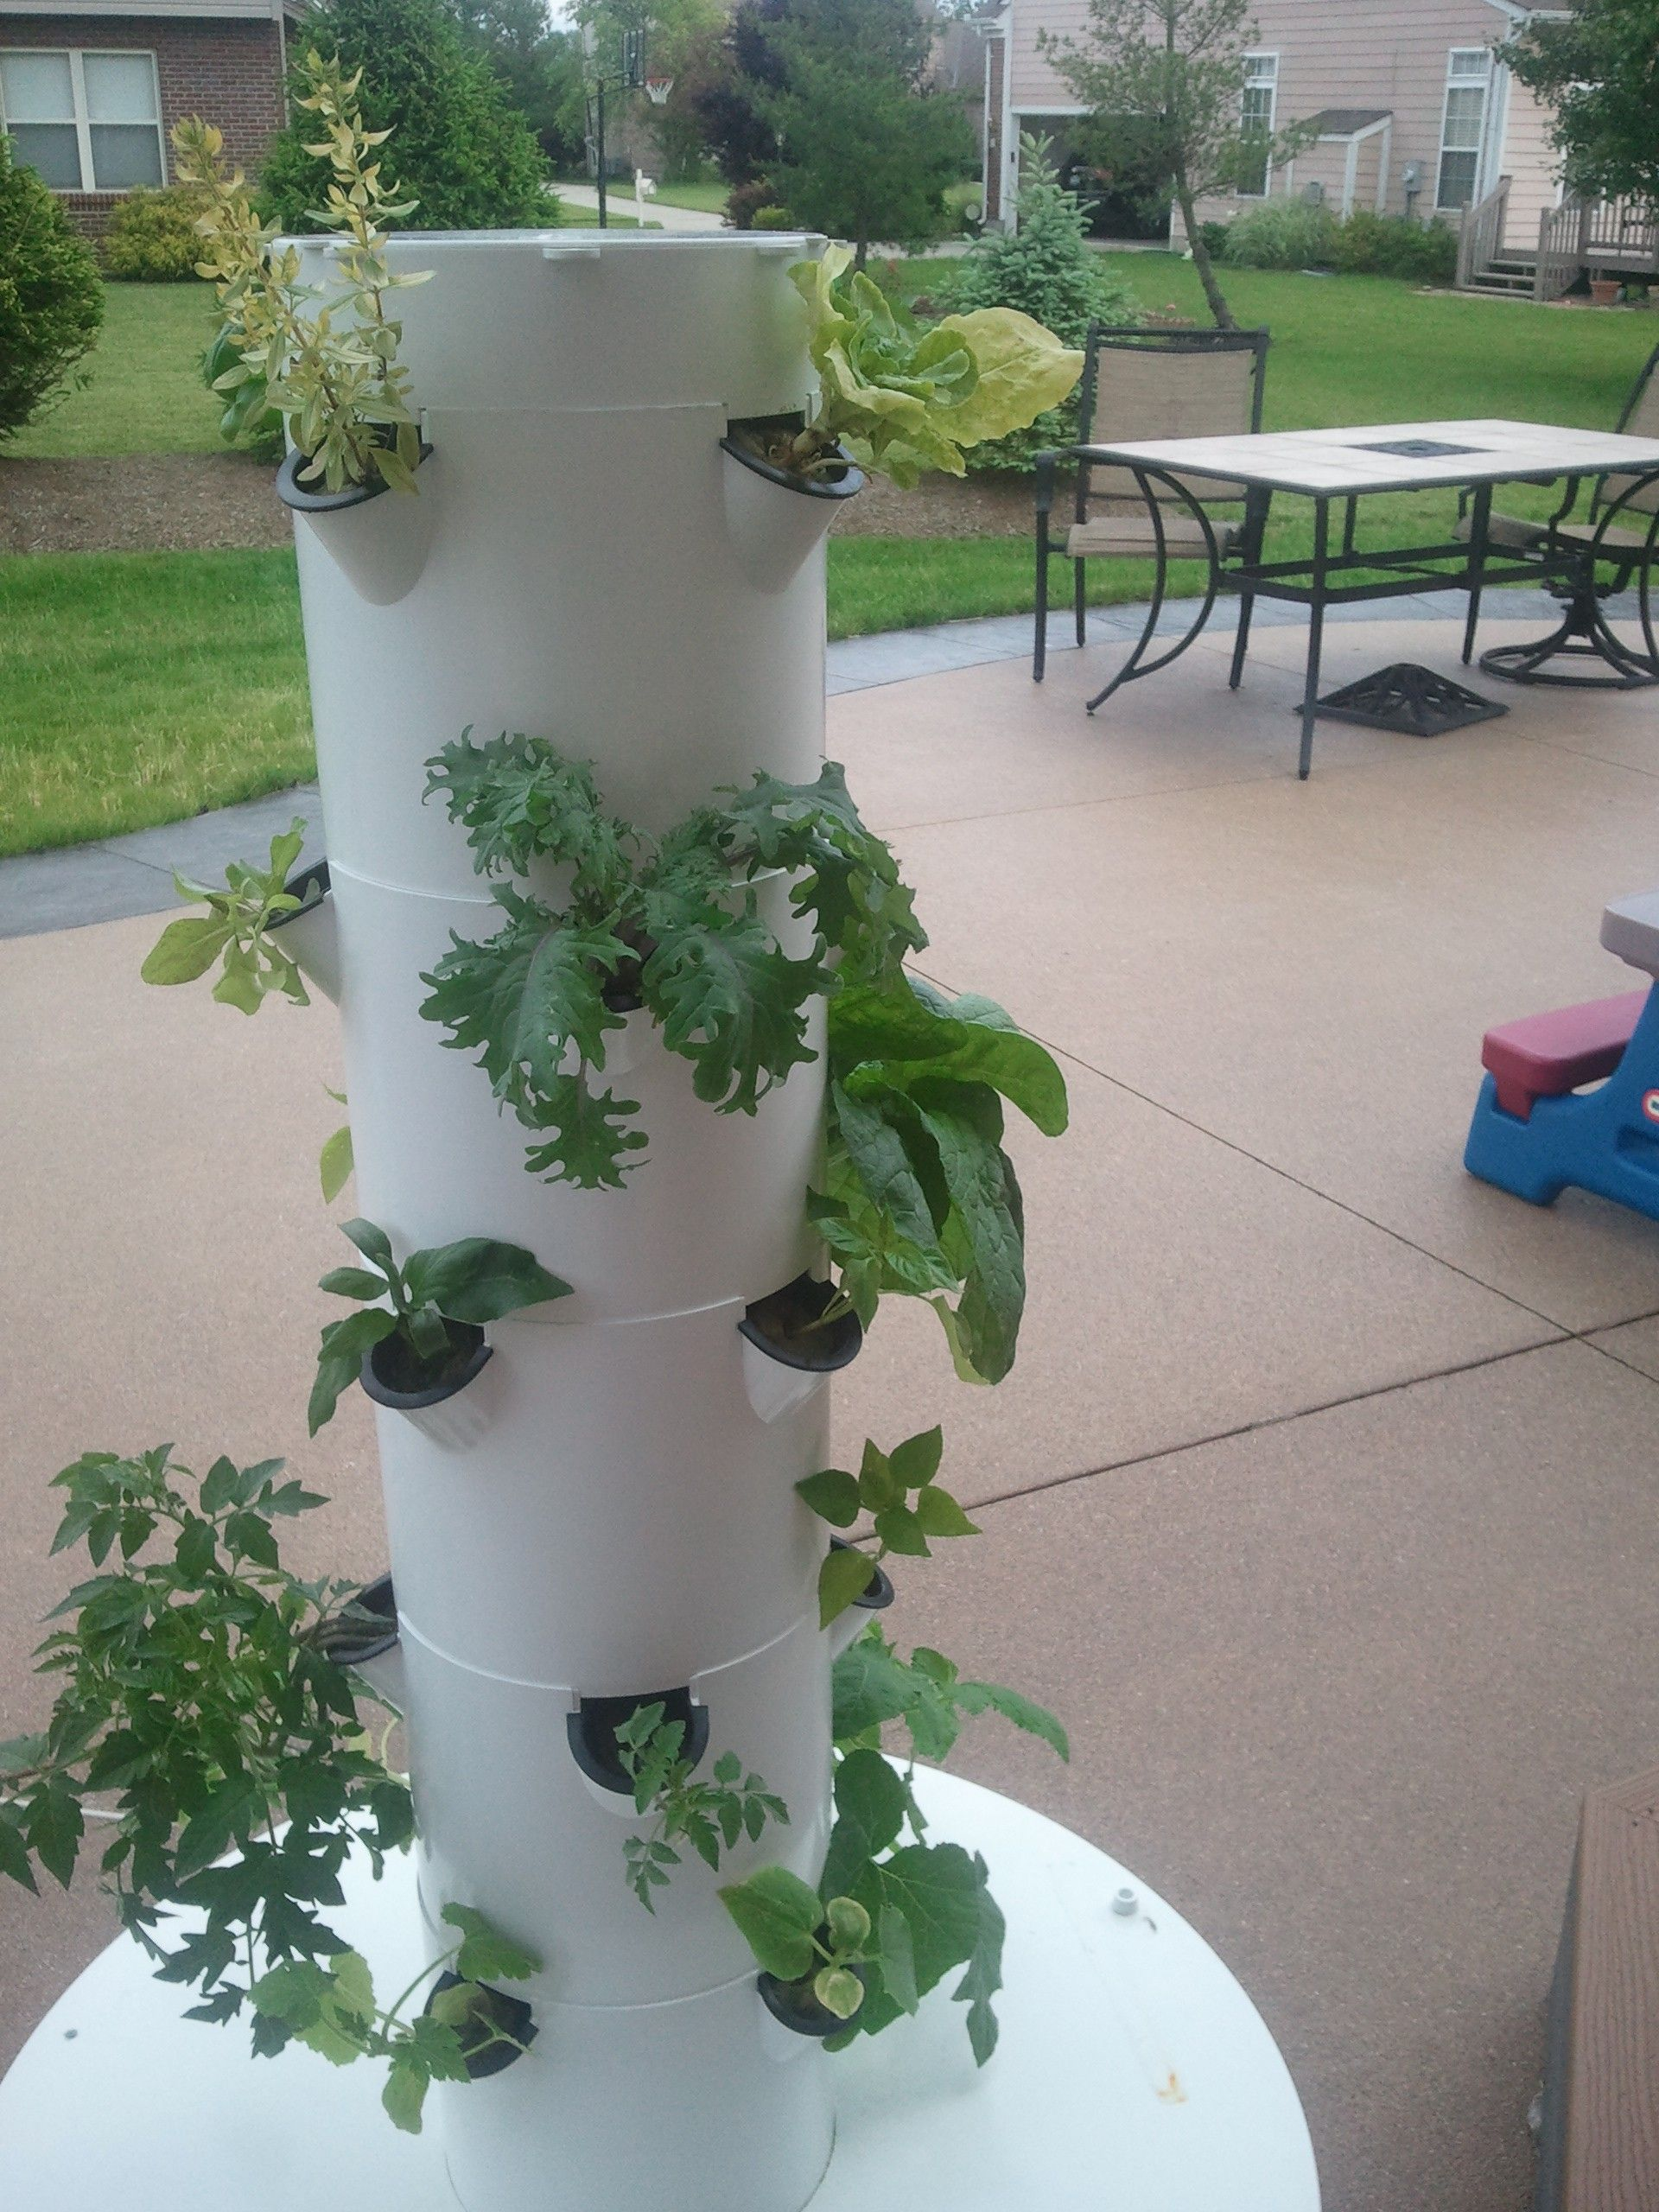 My Tower Garden after only 3 weeks Tower garden